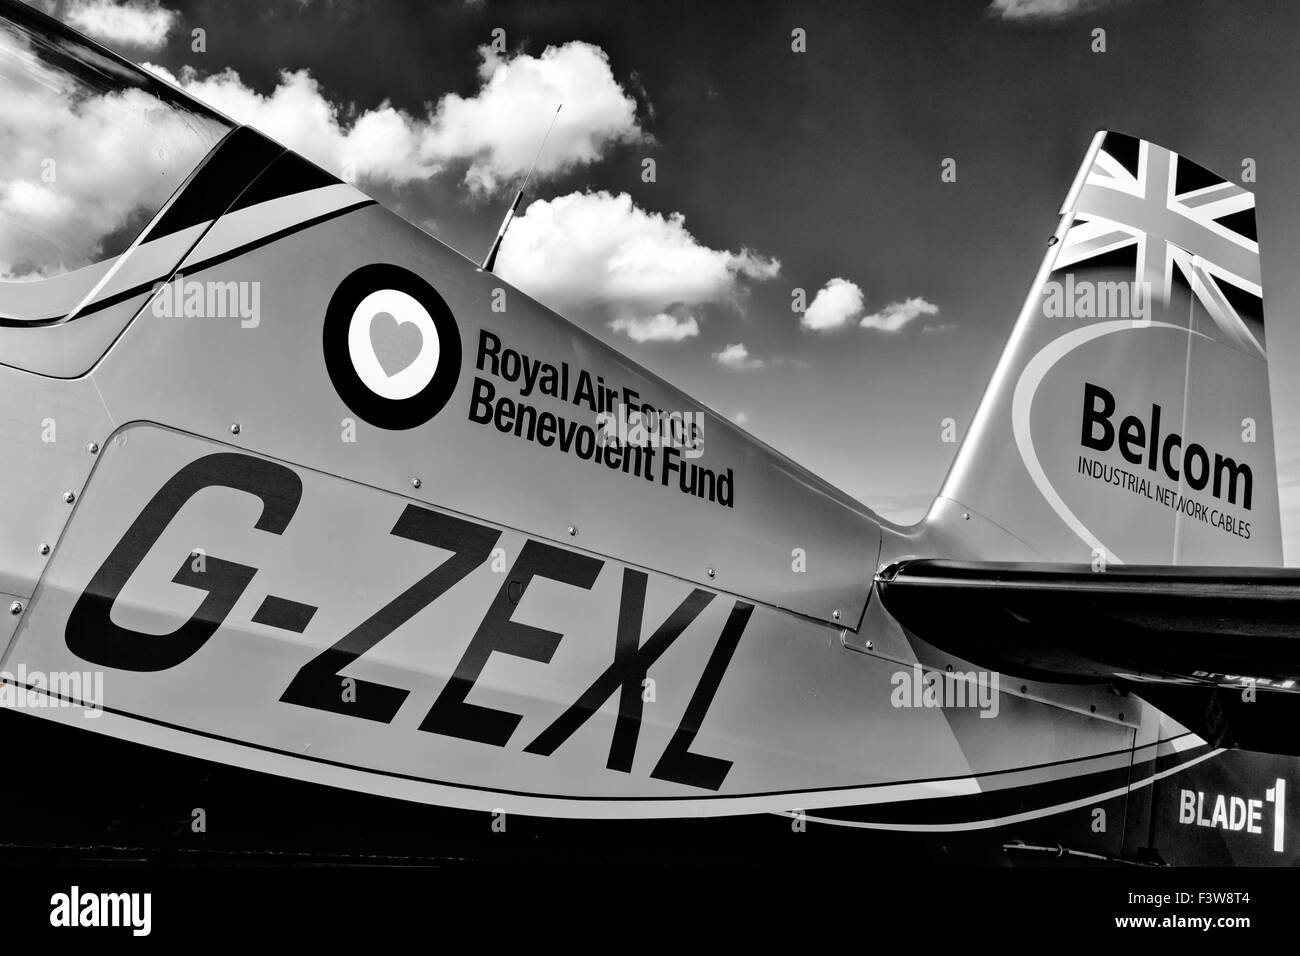 The Blades aerobatic team - Blade One - Extra Flugzeugbau E300 - Stock Image